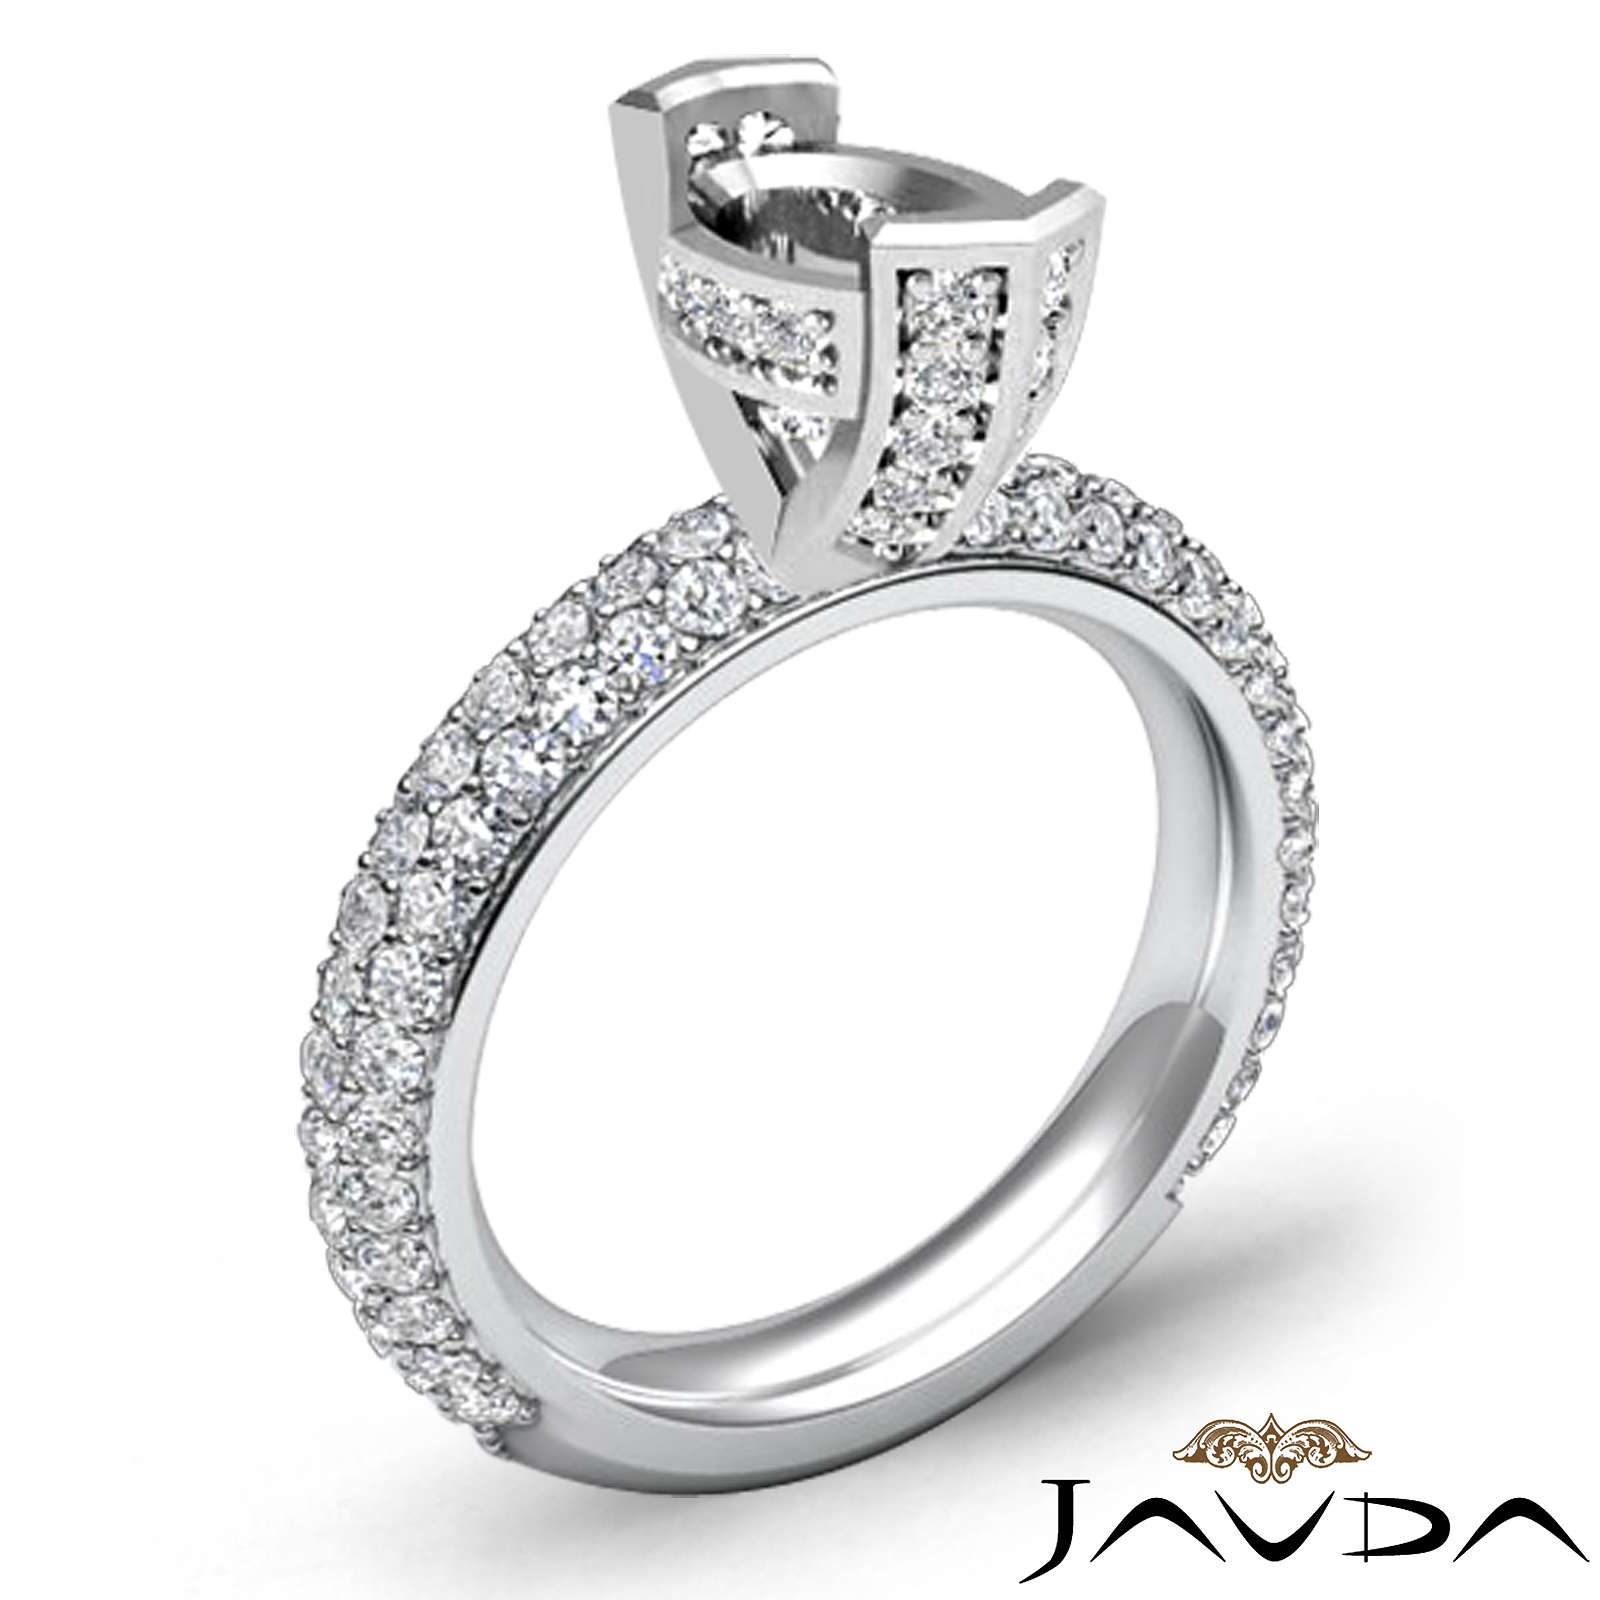 1 40Ct Oval Pave Diamond Engagement Women Ring Setting 14k White Gold Semi Mount